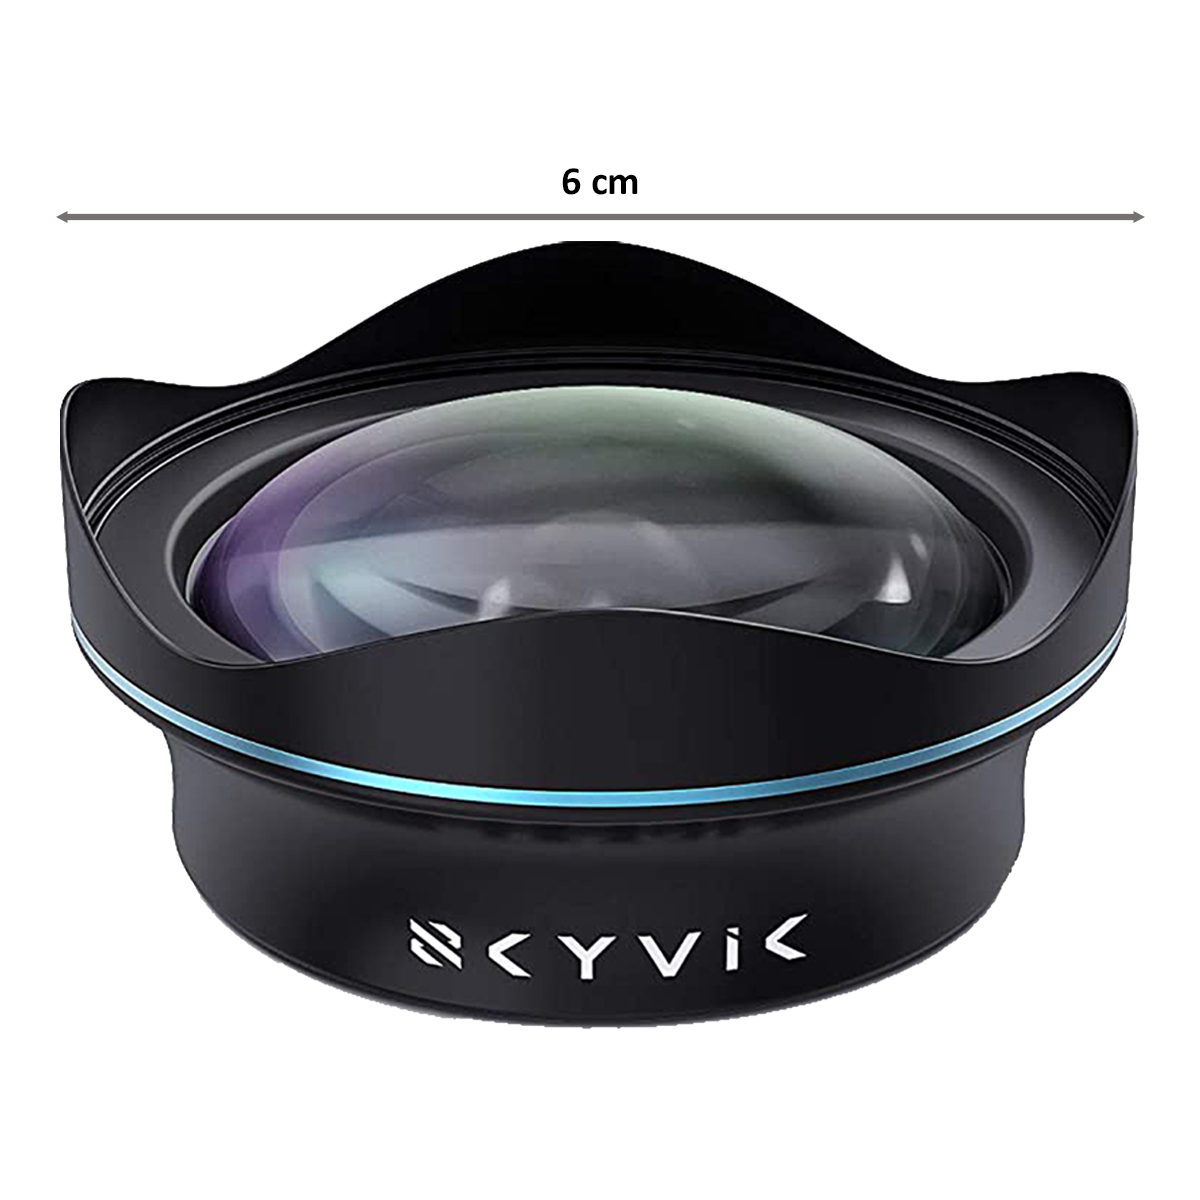 Skyvik Signi One 18mm Wide Angle Lens (CL-WA16, Black)_2